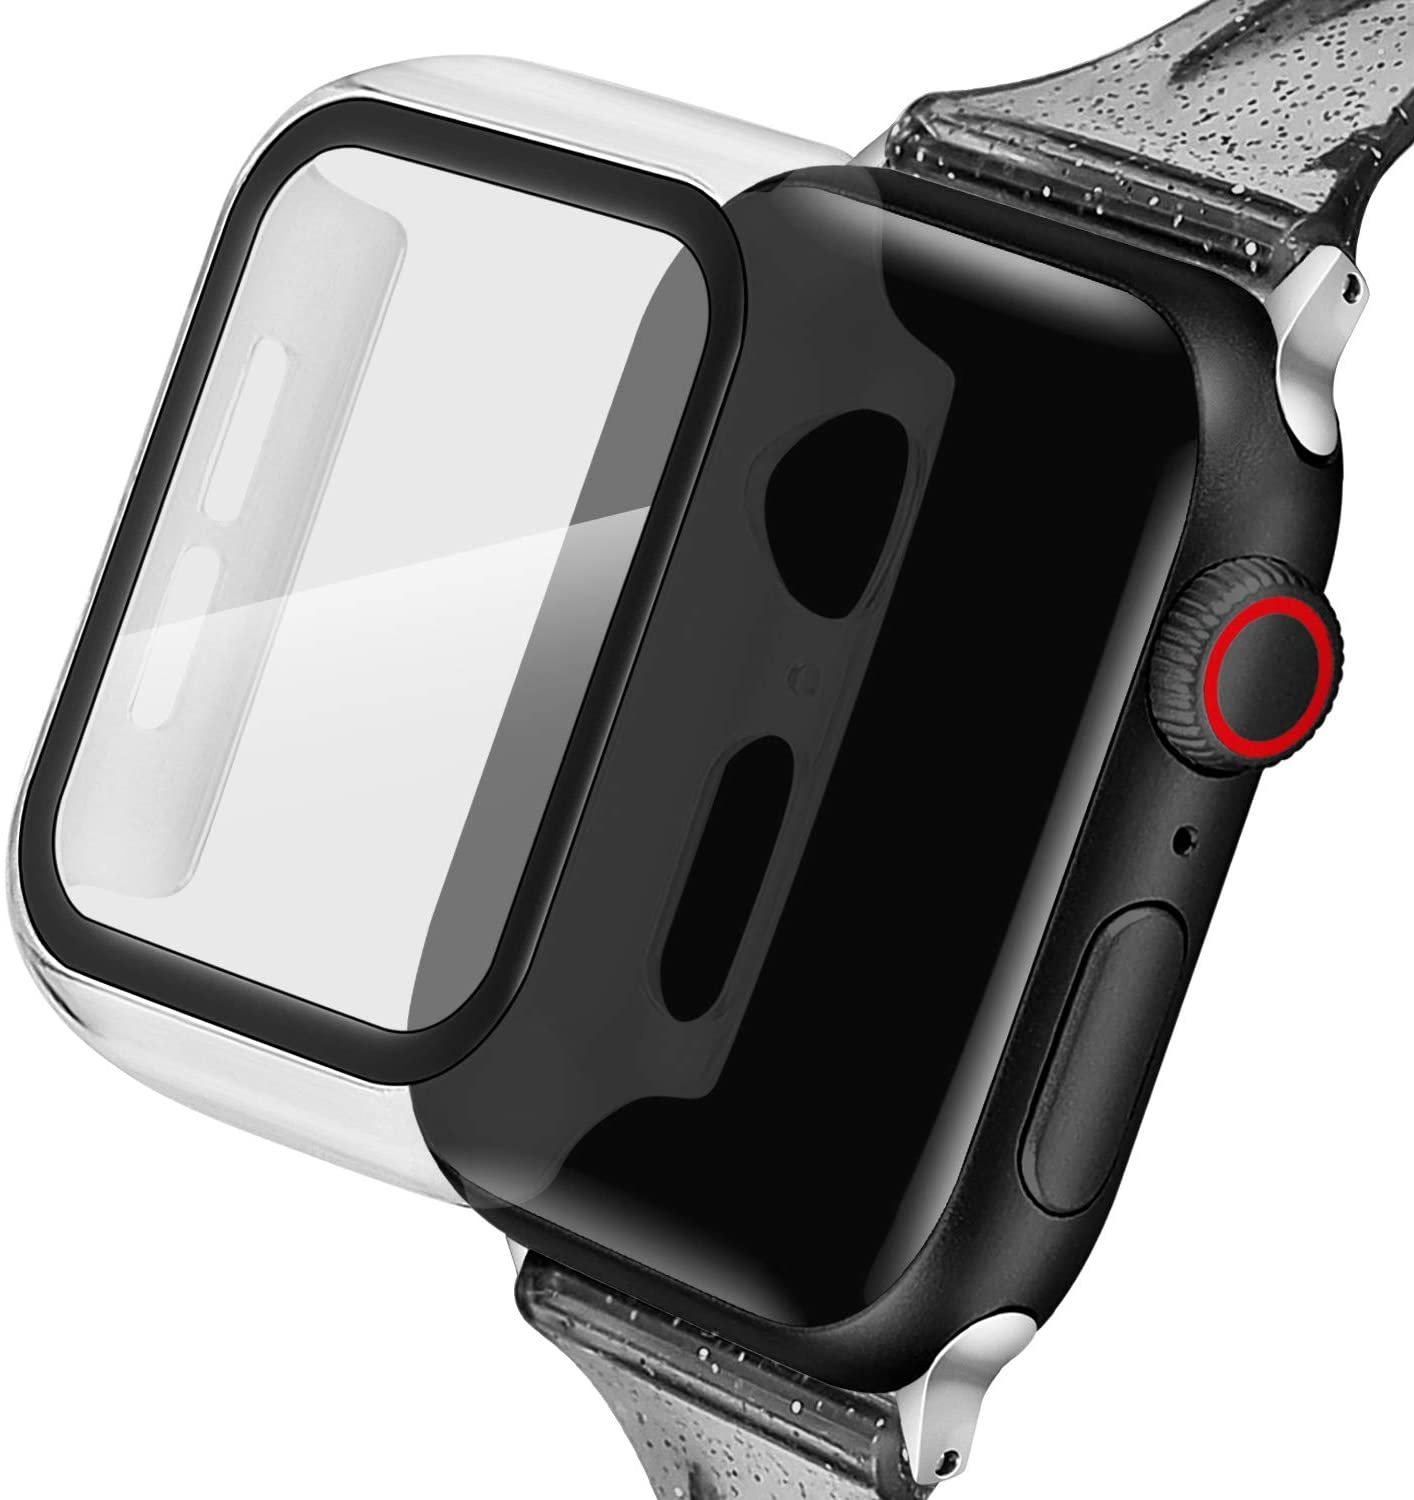 Blingbrione Clear Case with Screen Protector Compatible for Apple Watch Case 38mm,Hard PC Resin Ultra-Thin iPhone Watch Full Bumper Cover,HD Clear Apple Watch Shield Protector Series 3 2 1 -Clear